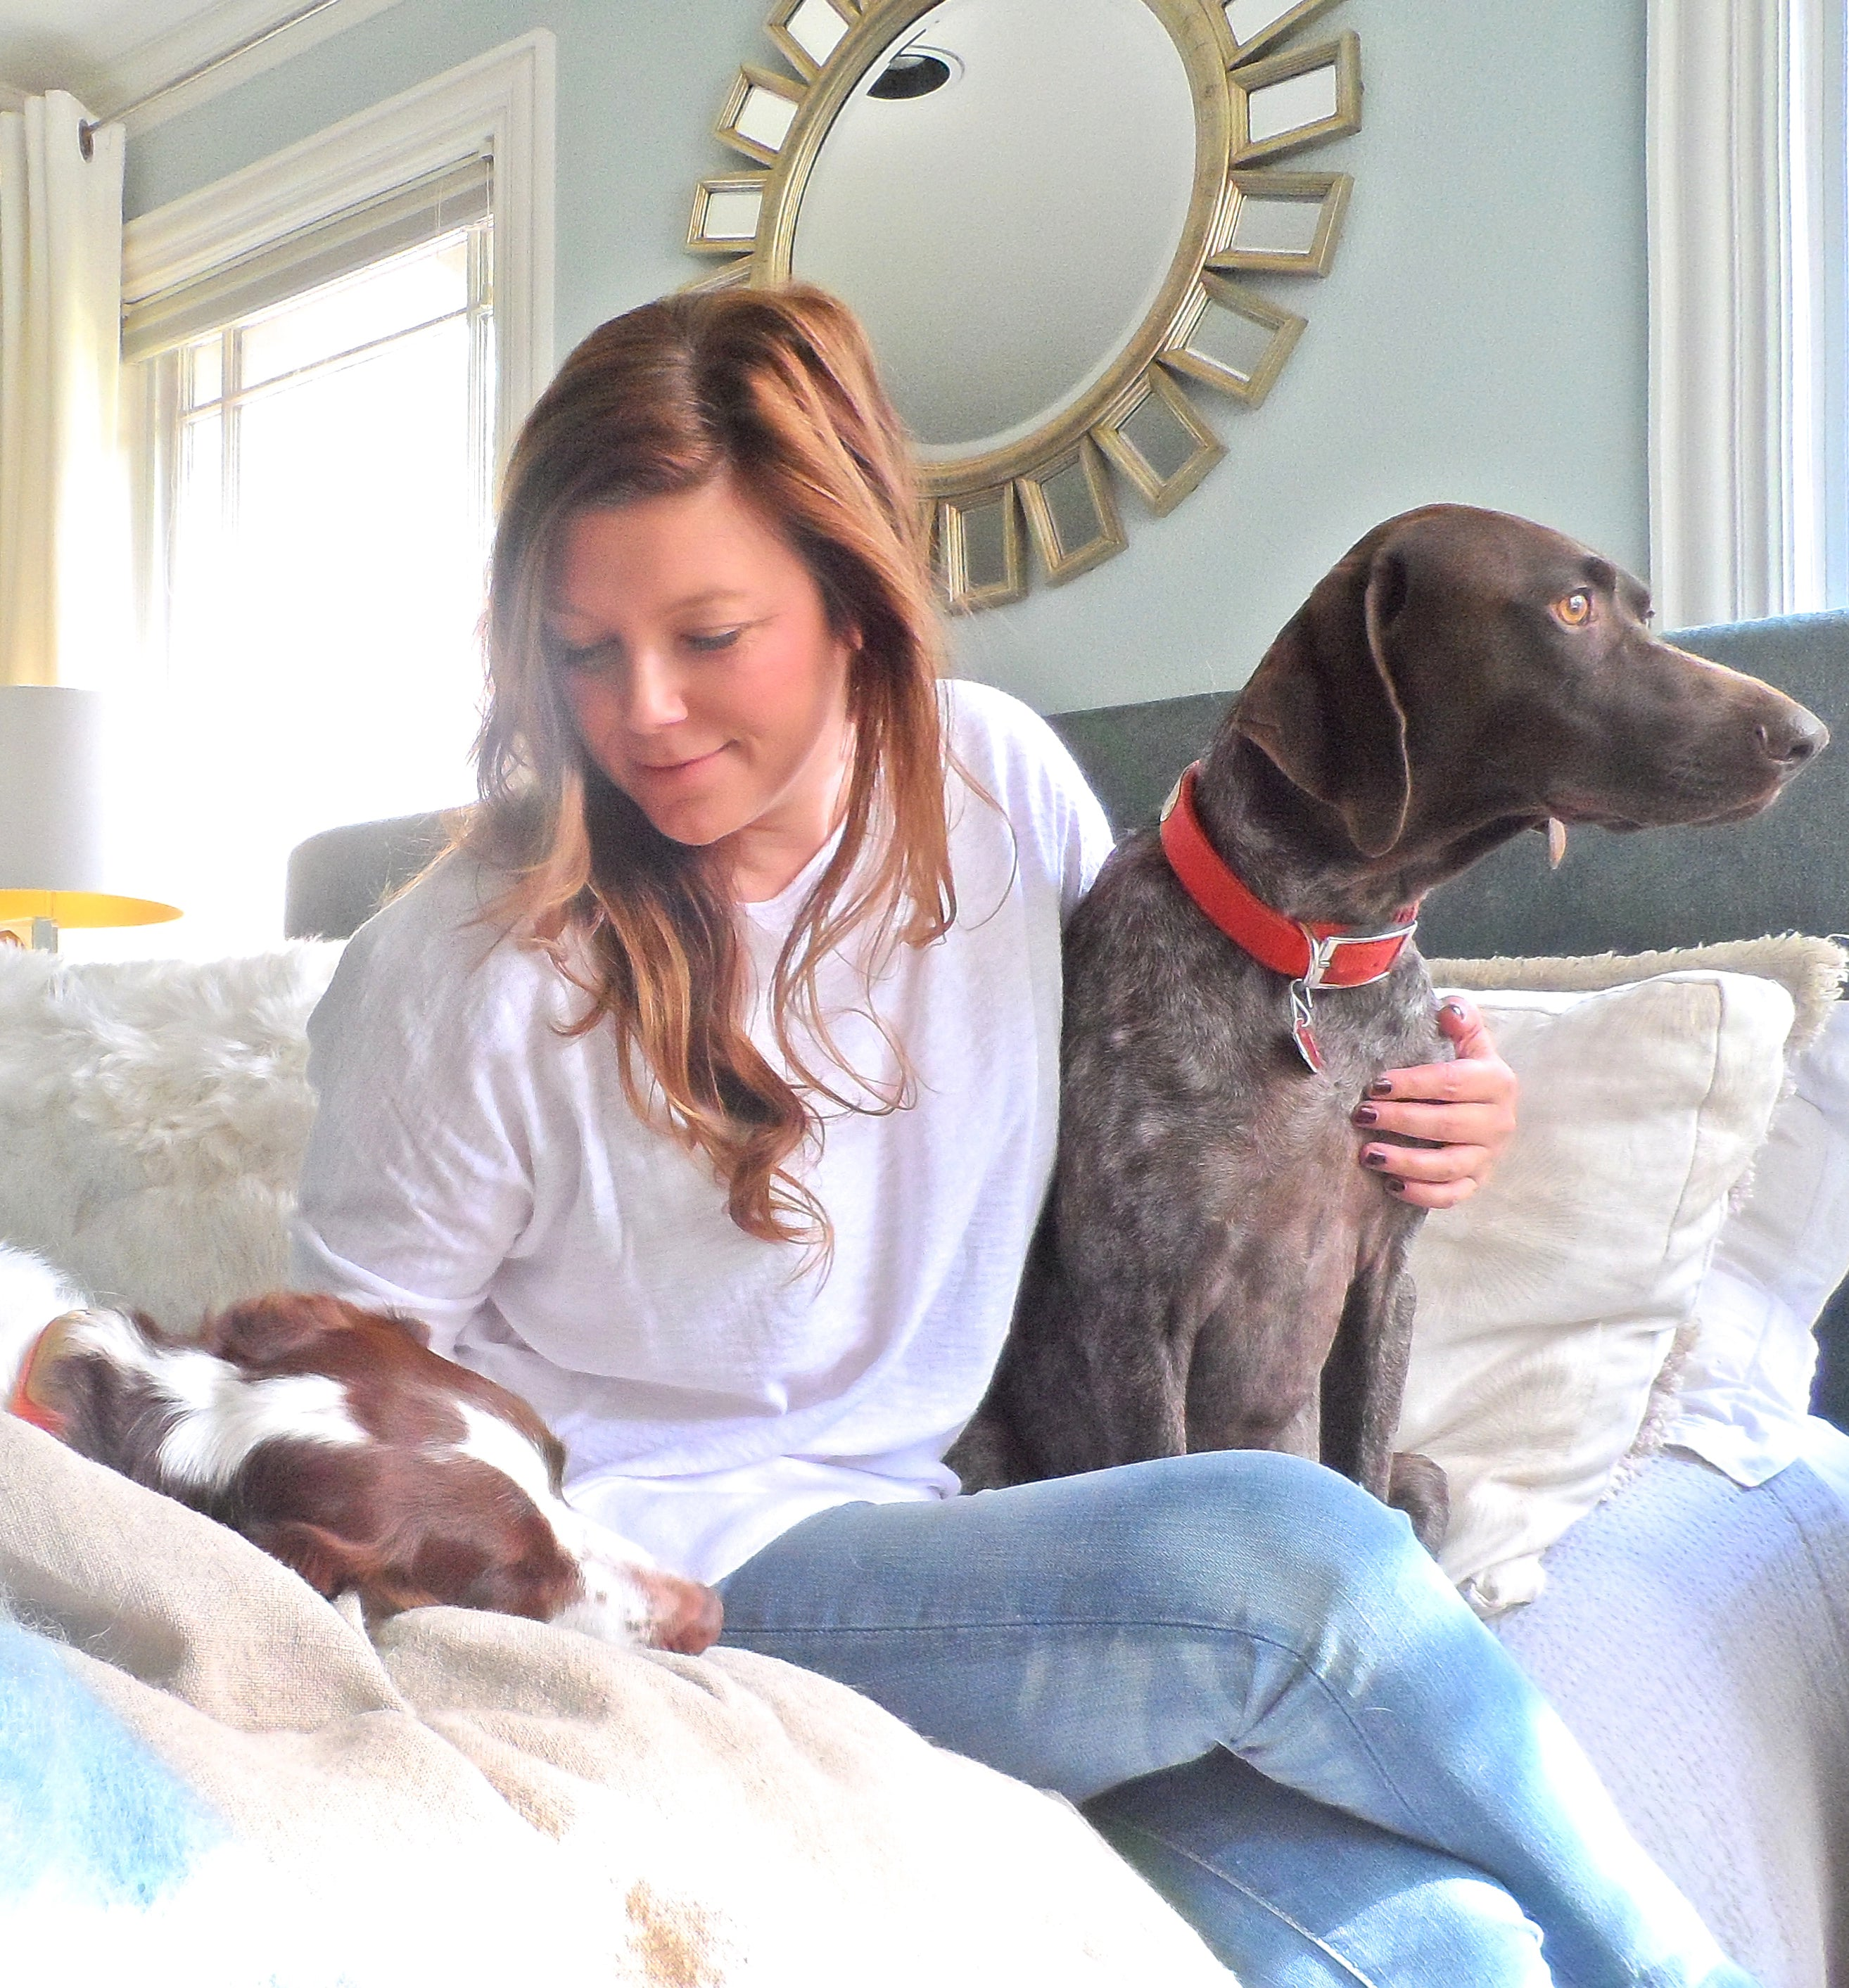 Abbe Fenimore of Studio Ten 25 relaxes at home with her dogs